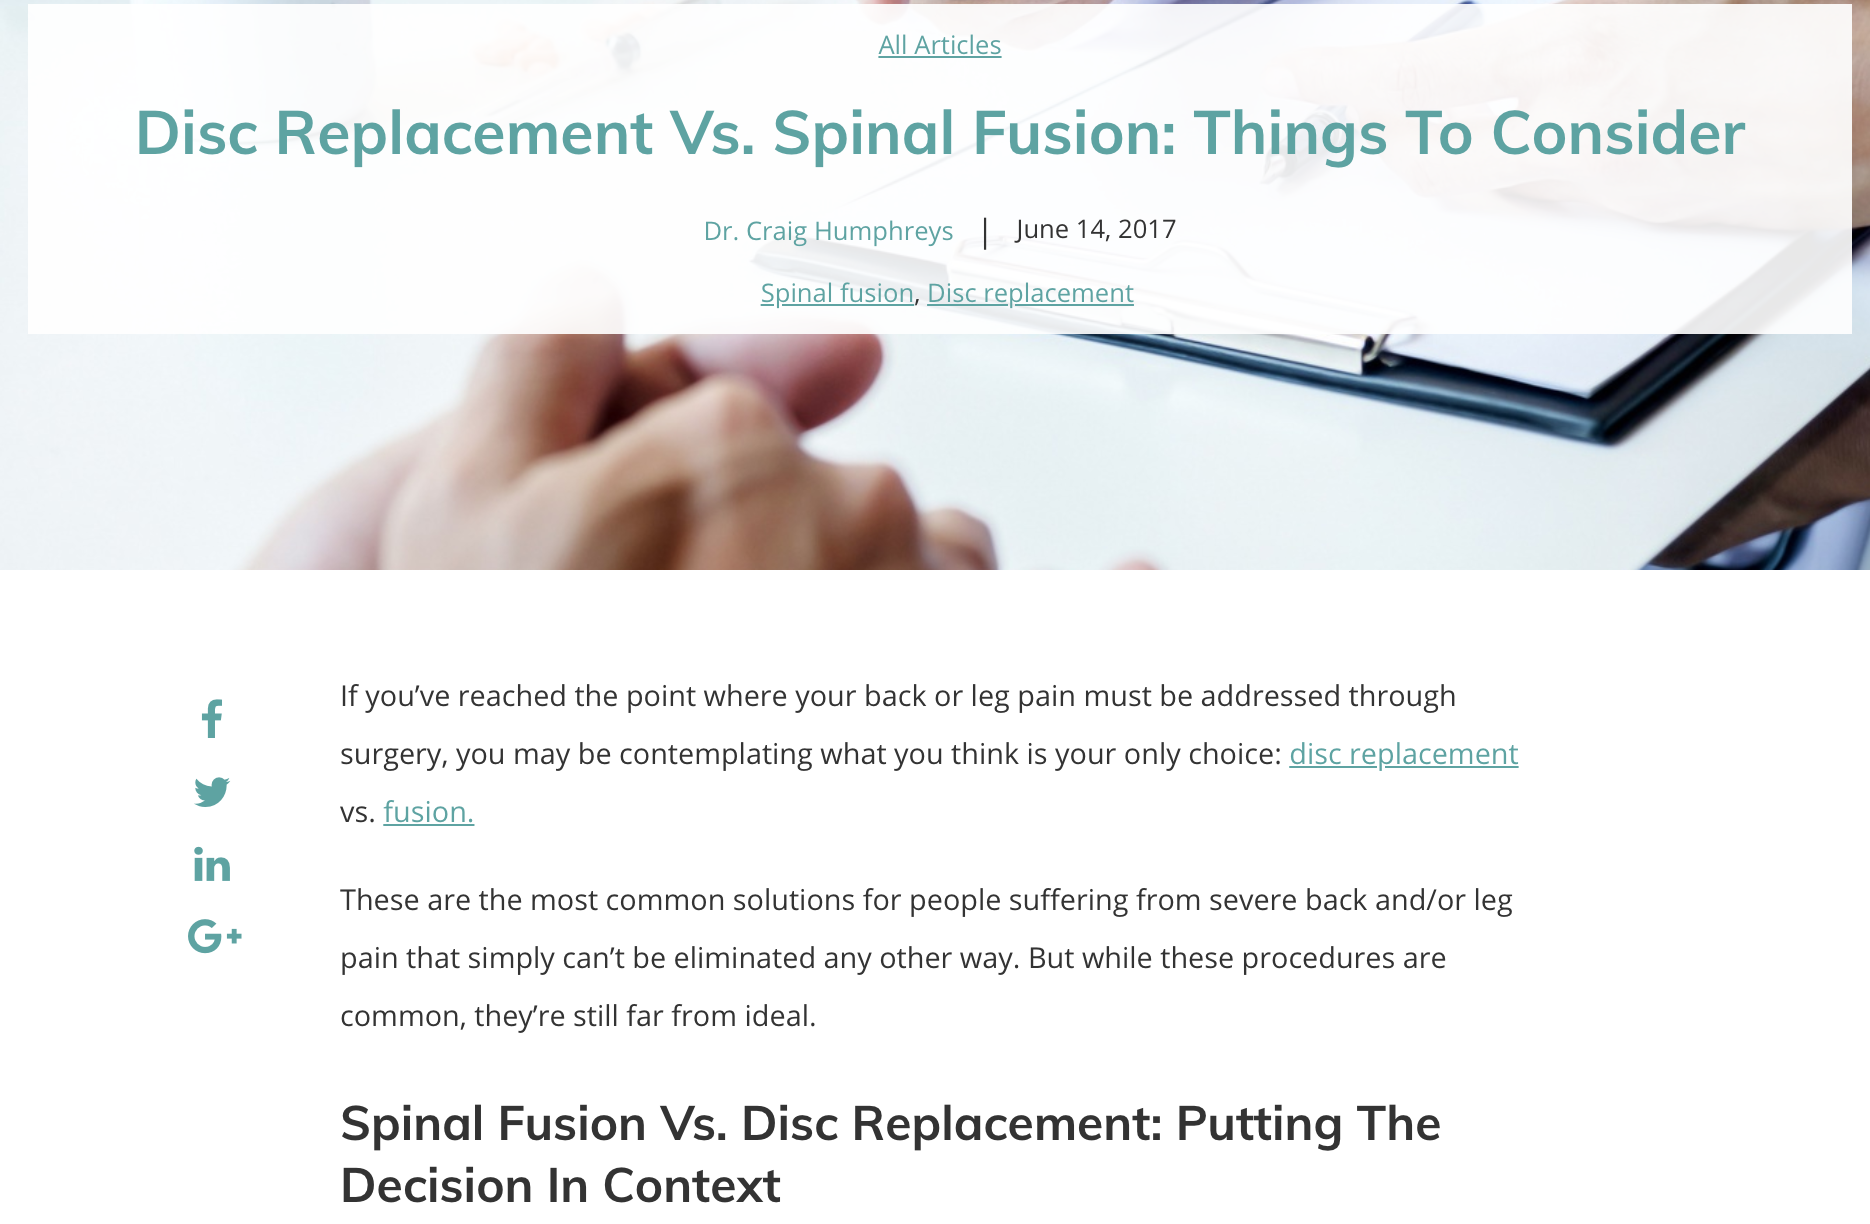 Disc Replacement Vs. Spinal Fusion: Things To Consider - BalancedBack's™ comparison post